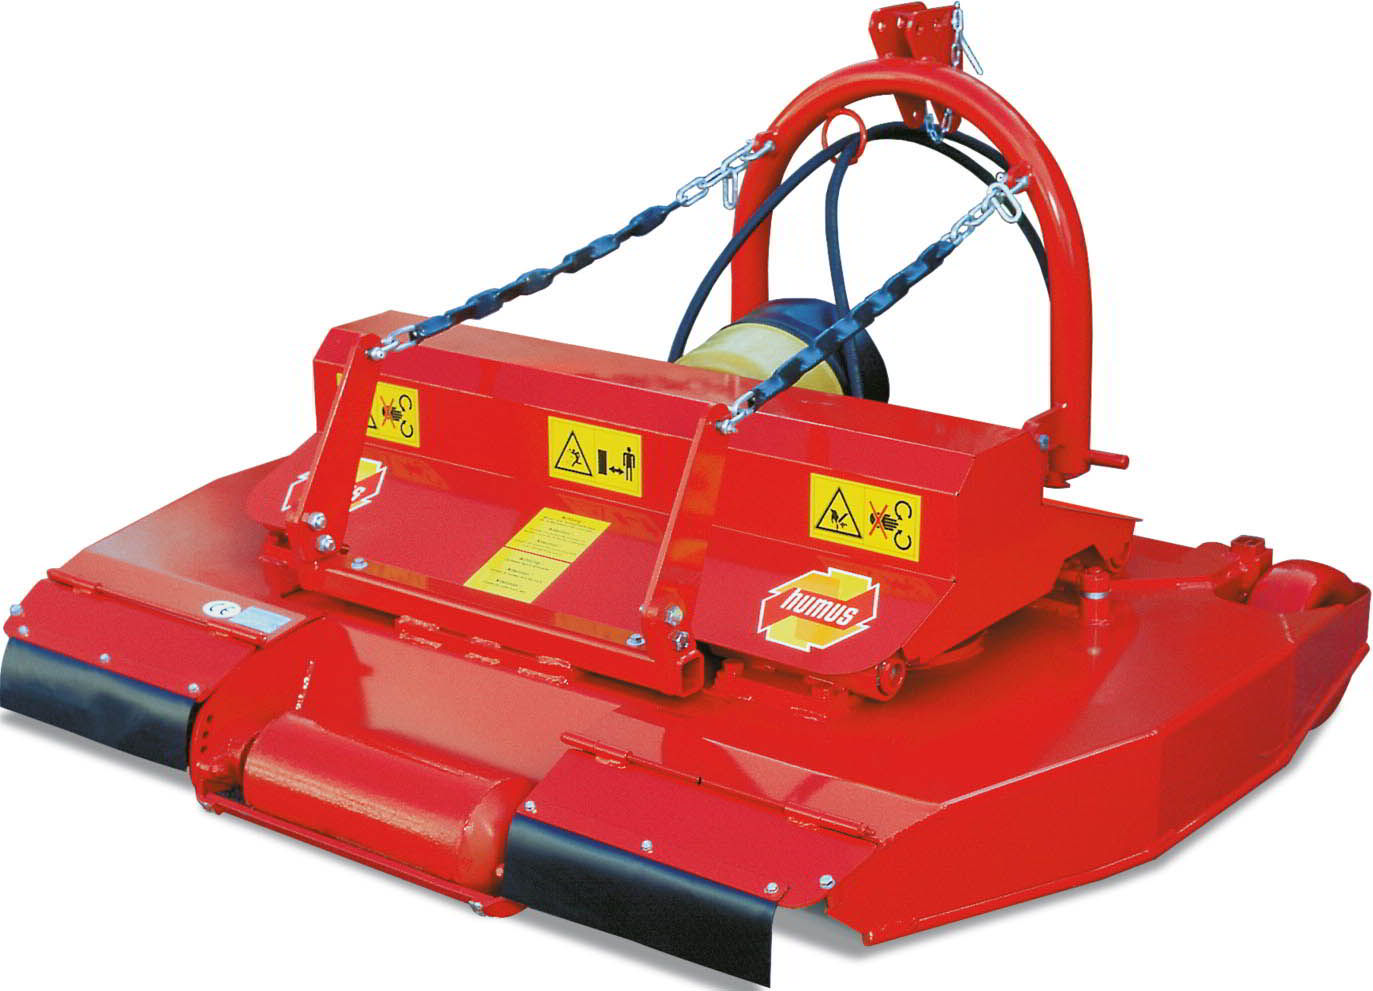 lv-rotary-mulcher-compact-construction